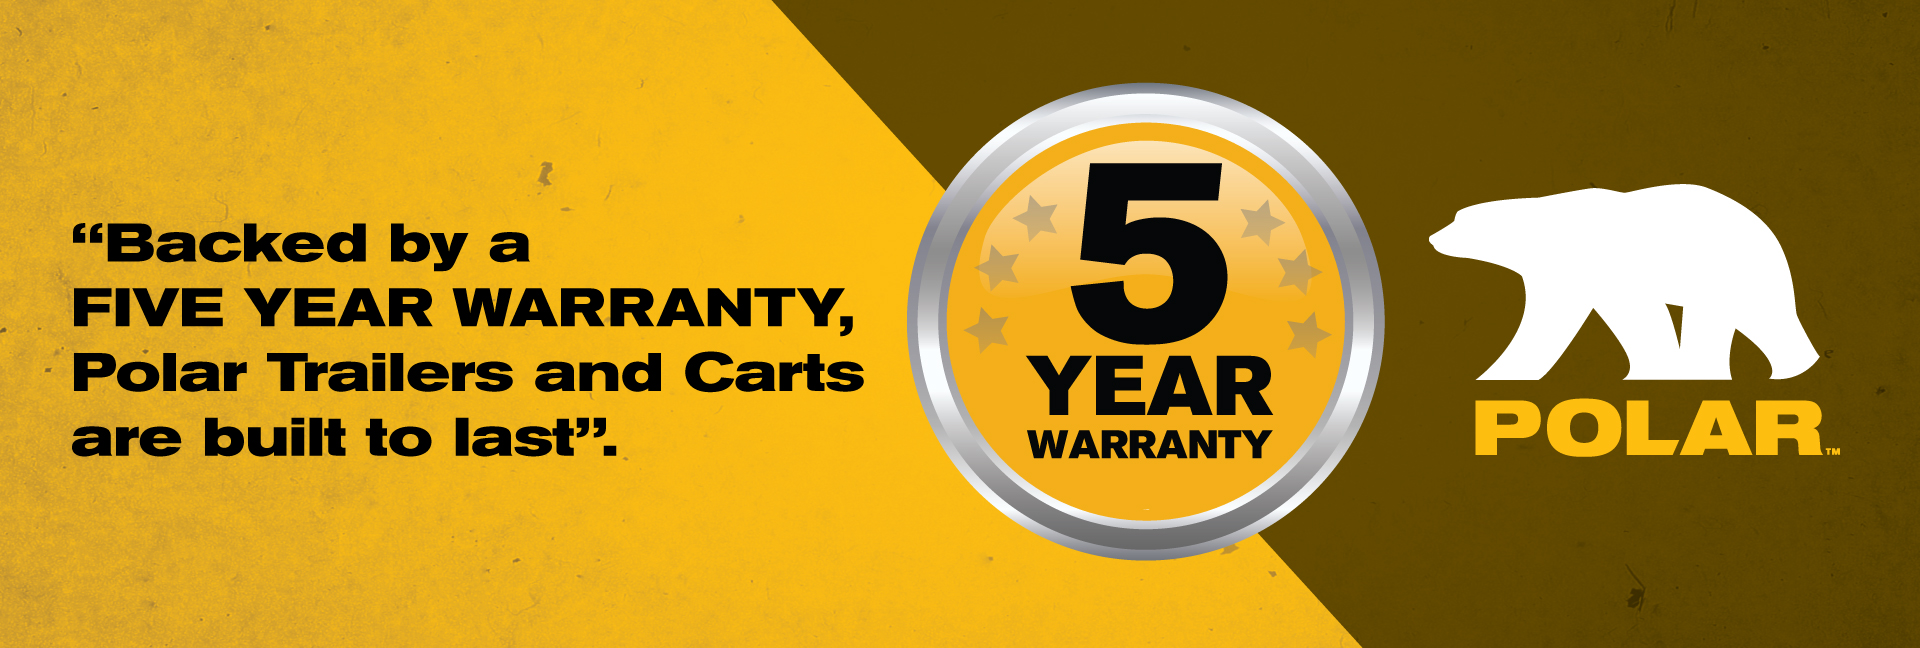 HD-Max_Web-Banner_5-Year-Warranty-1920-x-648